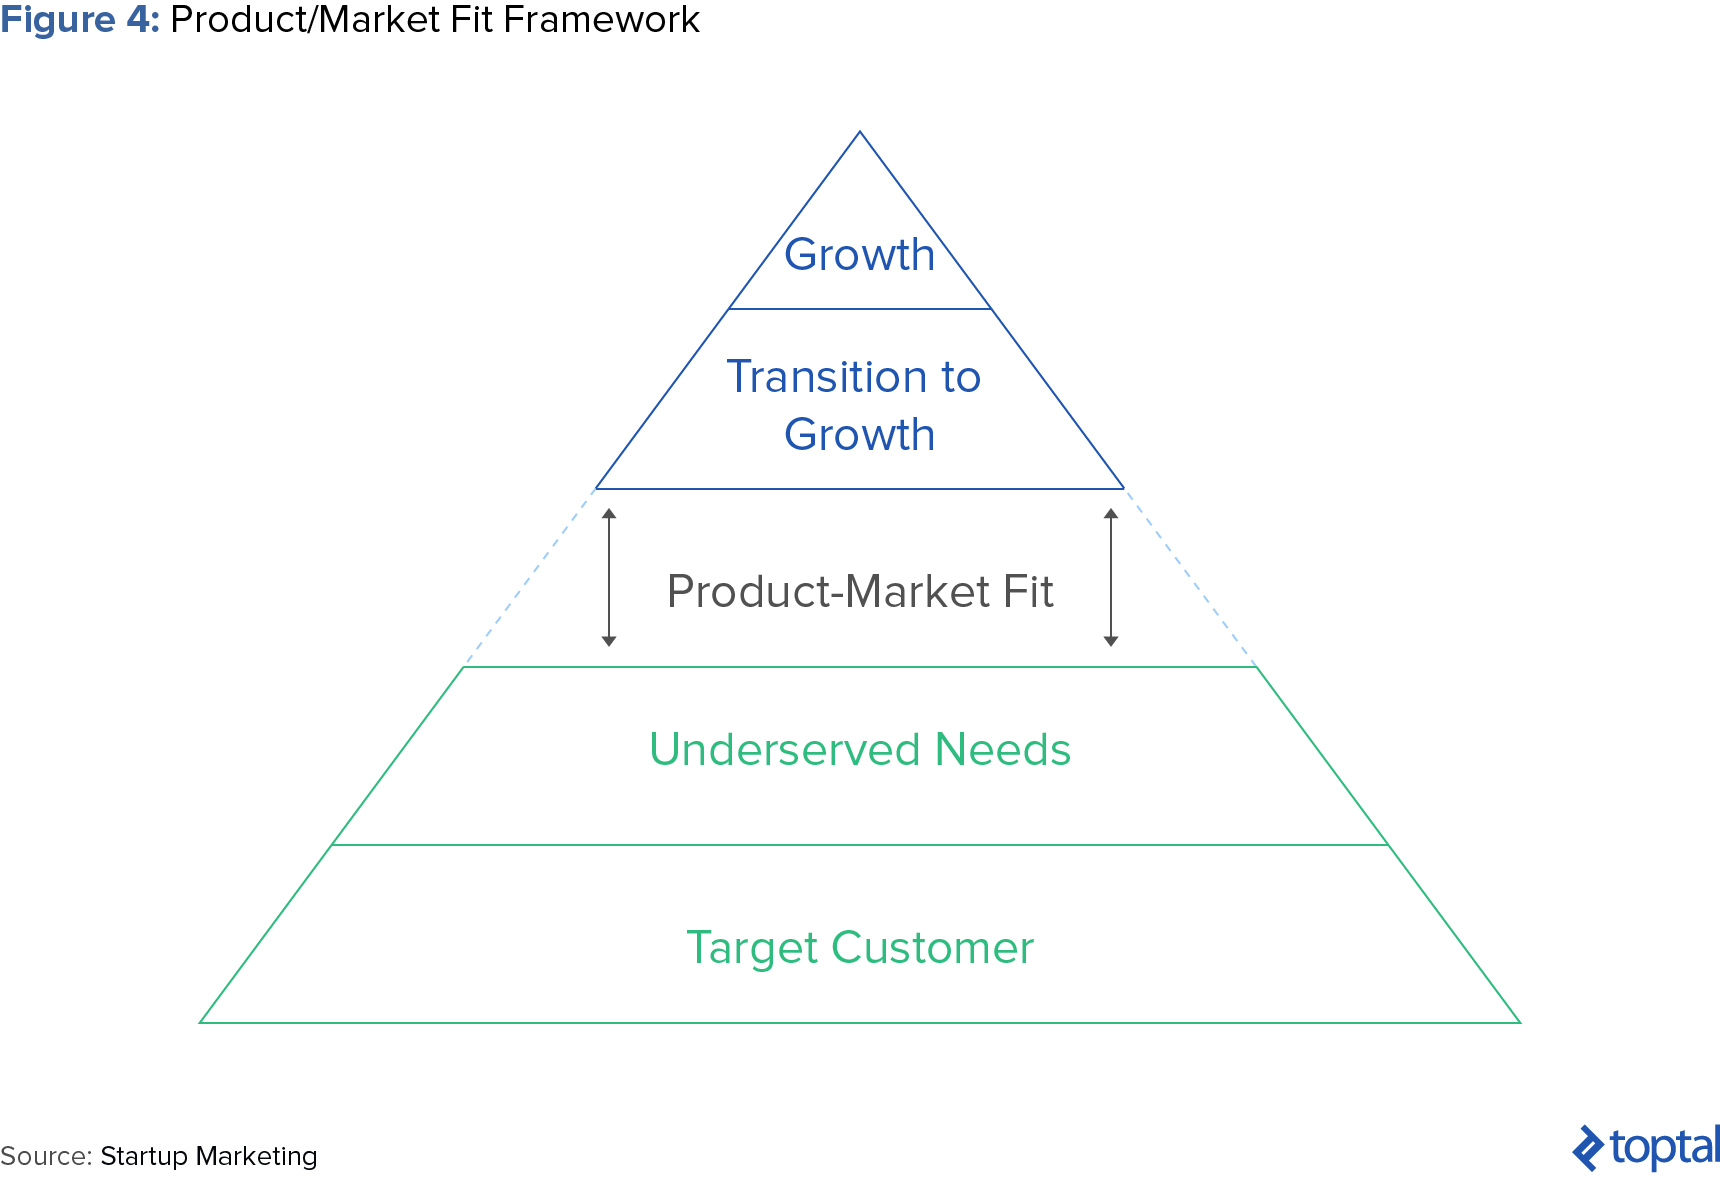 Figure 4: Product/Market Fit Framework